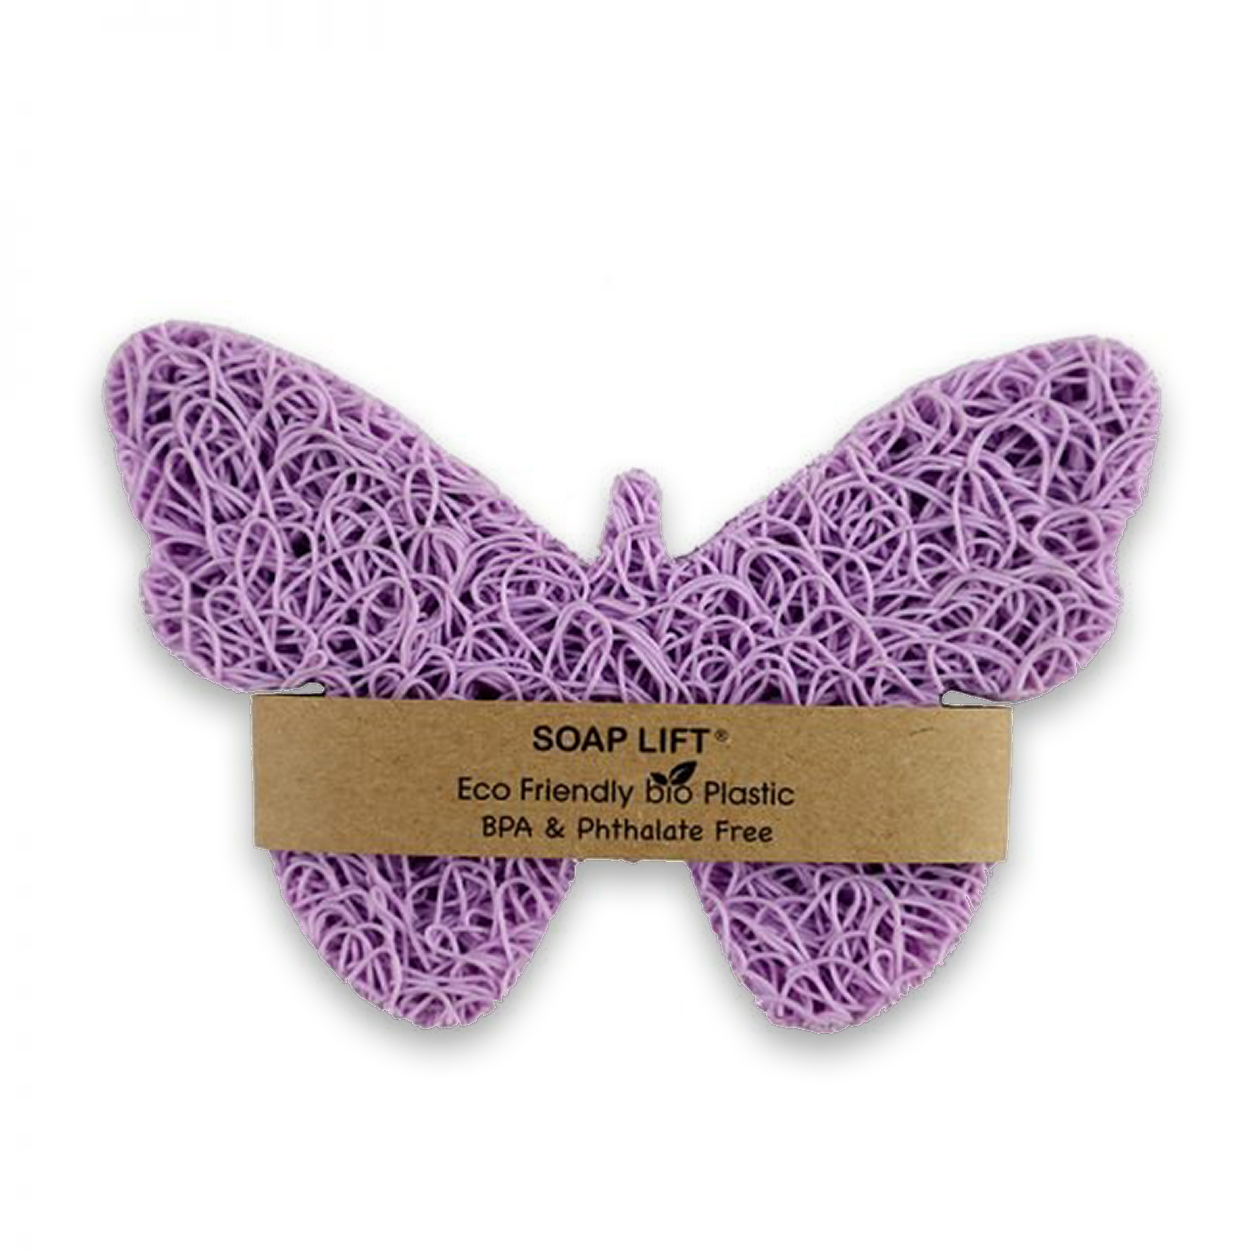 Butterfly Soap Lift | Siani Probiotic Body Care